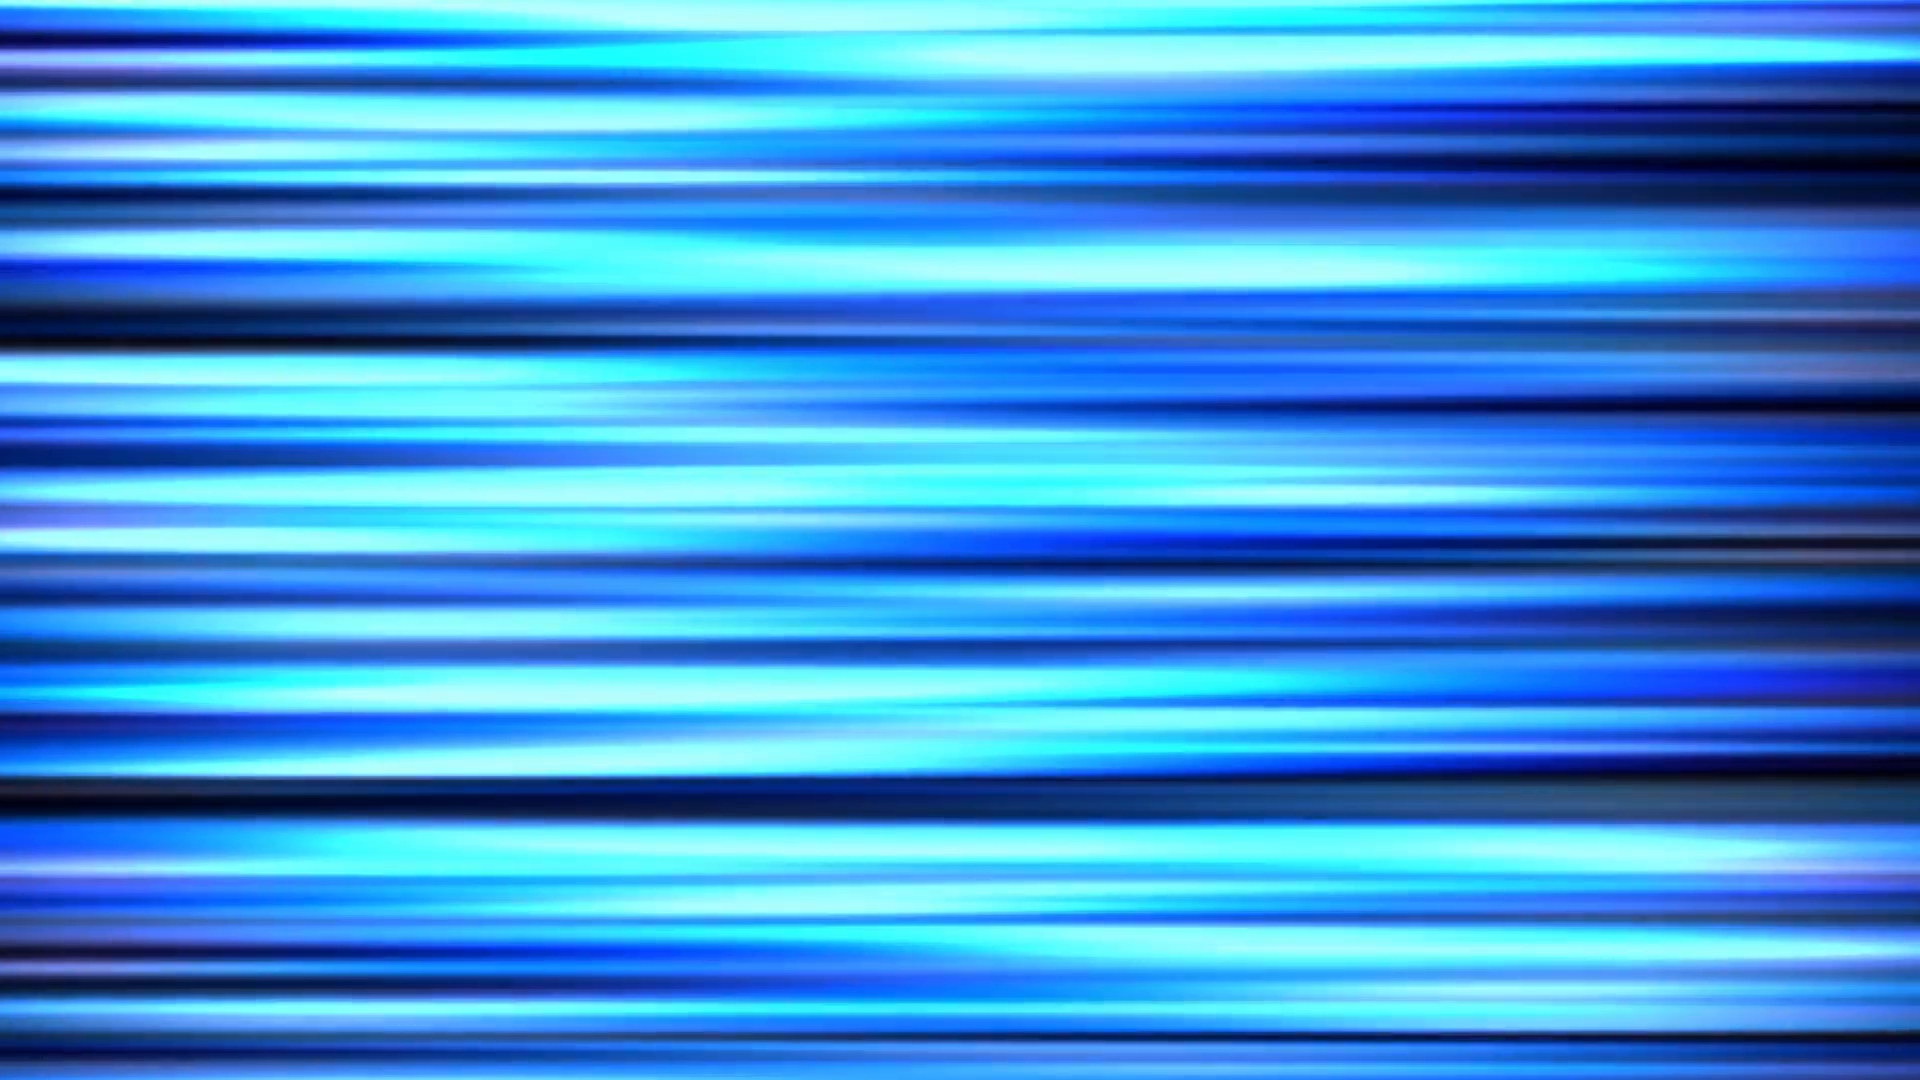 Shifting Liquid Blue Lines Horizontal abstract background loop 1 1920x1080